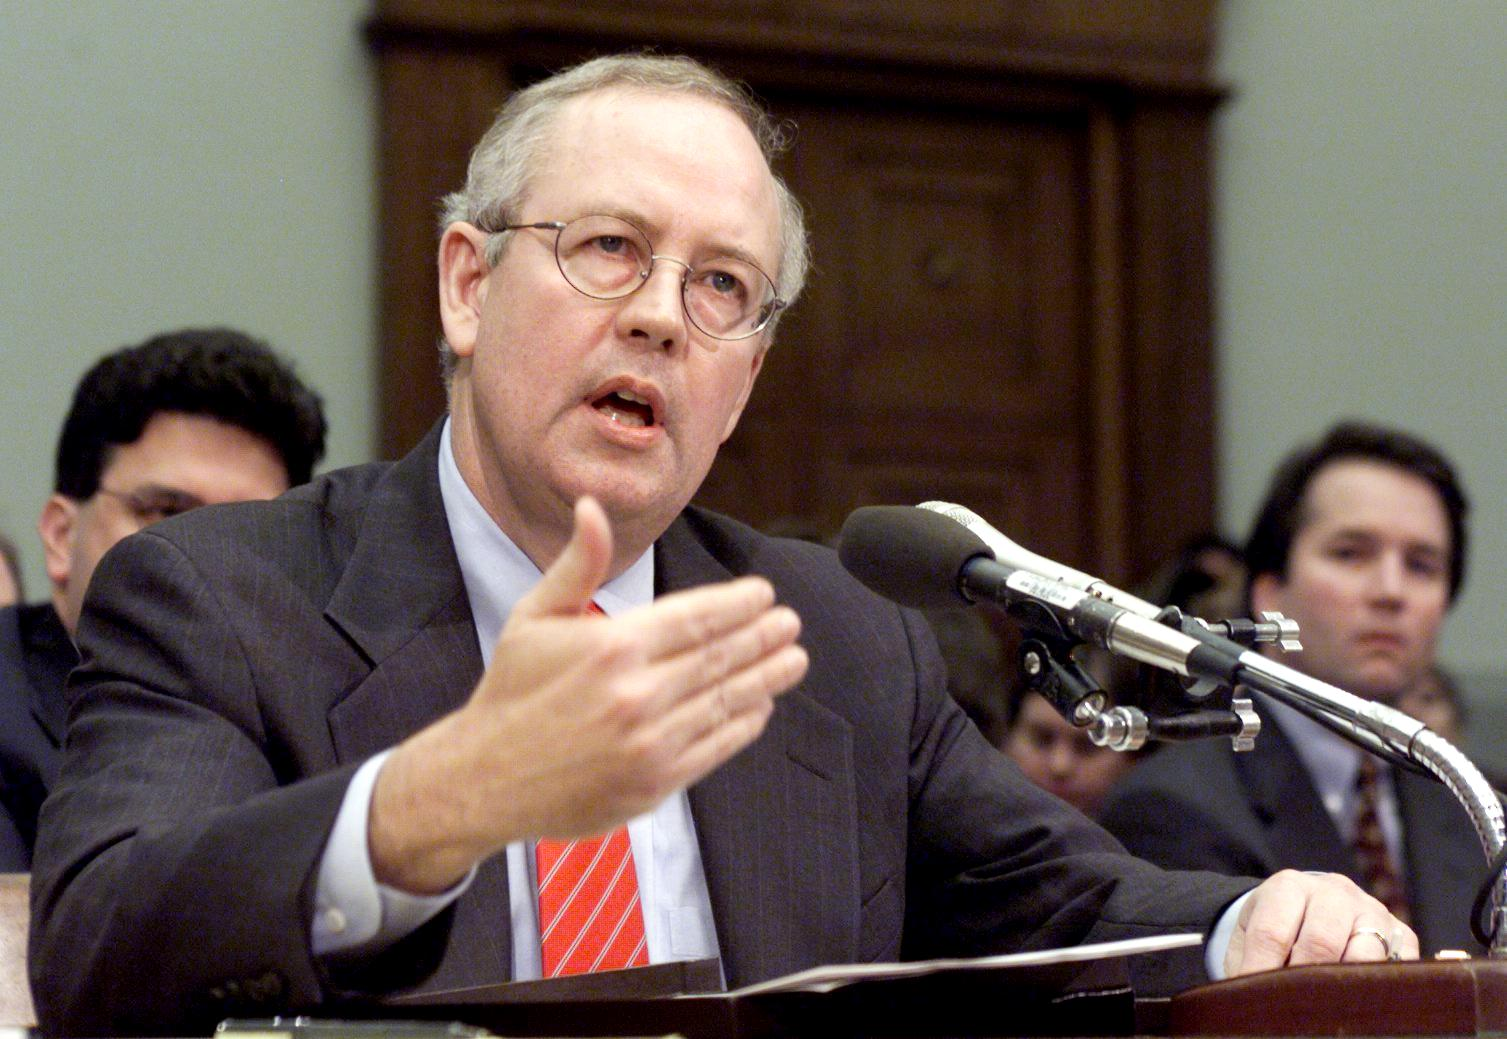 Independent Counsel Kenneth Starr testifies before the House Judiciary Committee on Impeachment Inquiry 19 November on Capitol Hill in Washington DC. (LUKE FRAZZA/AFP/Getty Images)